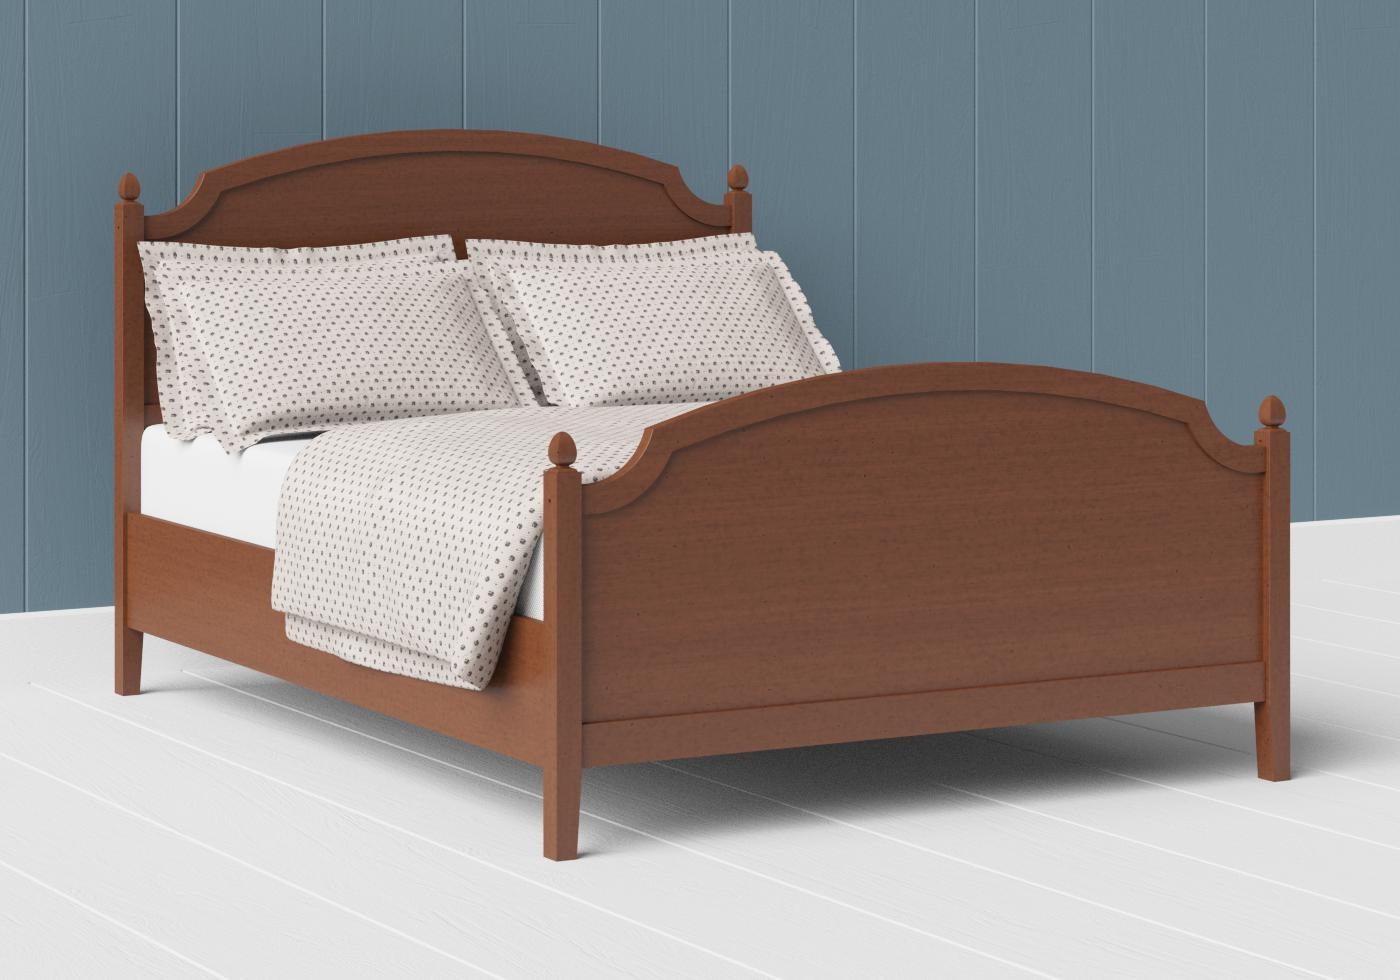 Kipling wood bed in a dark cherry finish